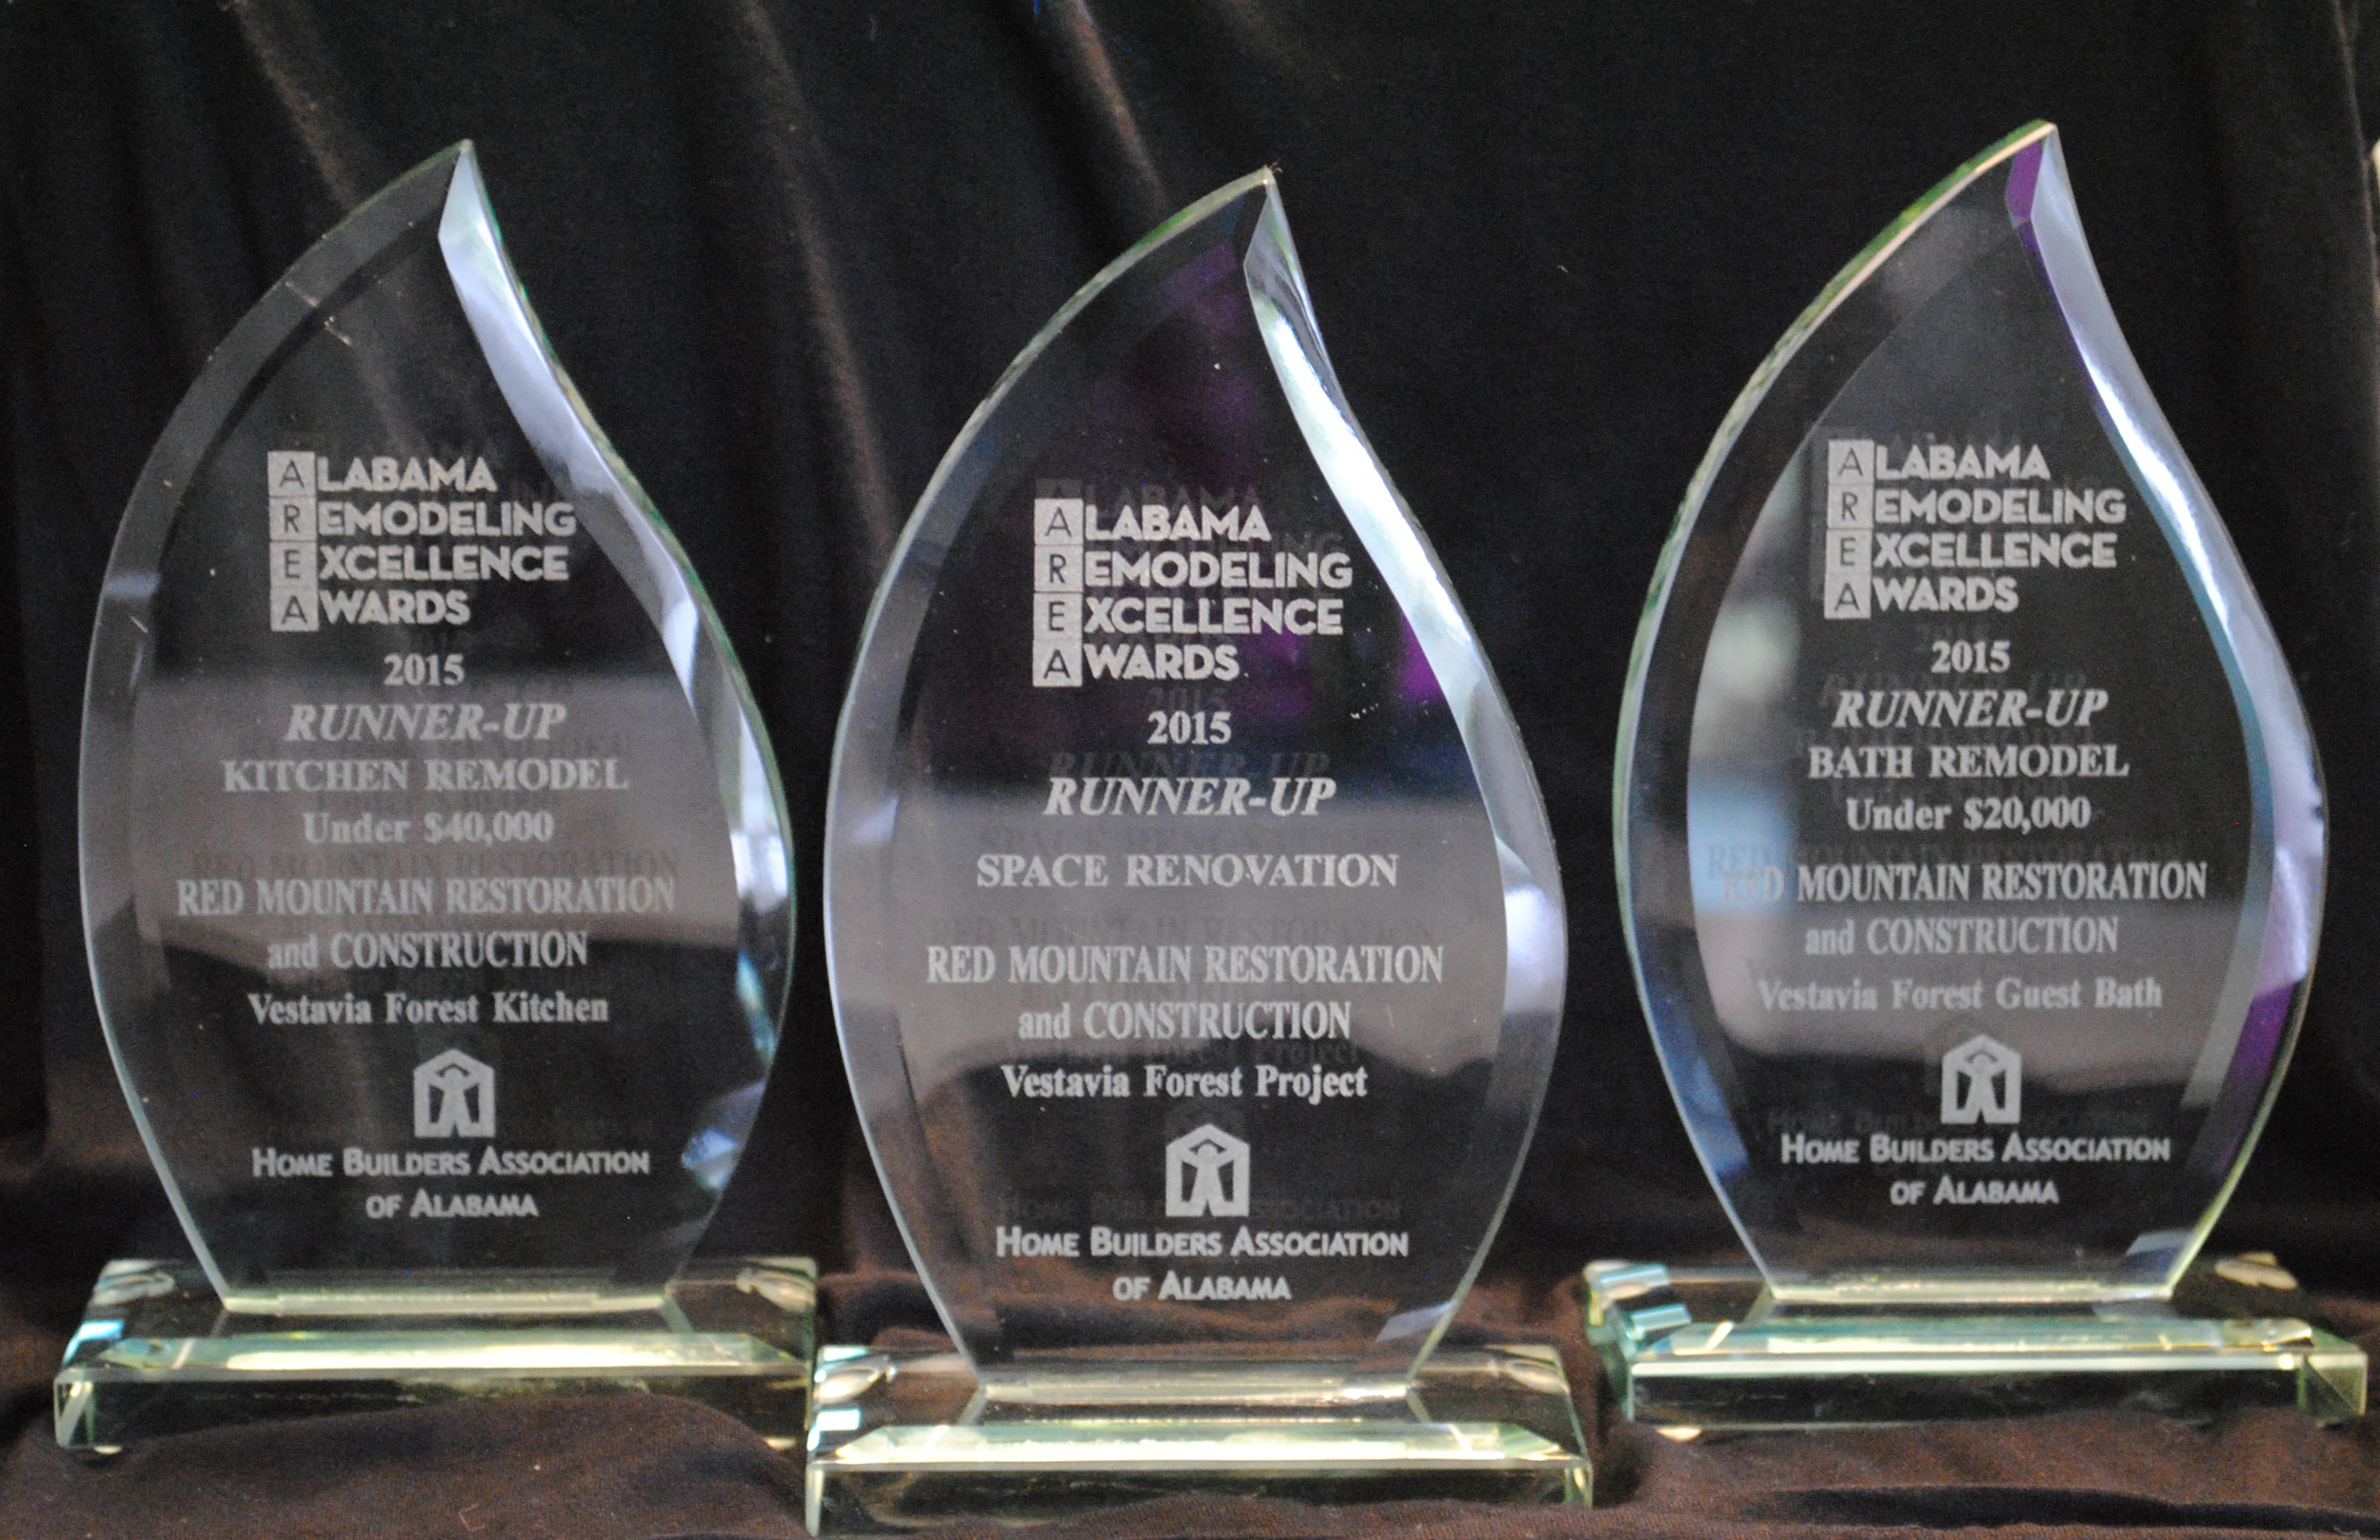 We are proud to receive these honors from the Home Builders Association of Alabama.